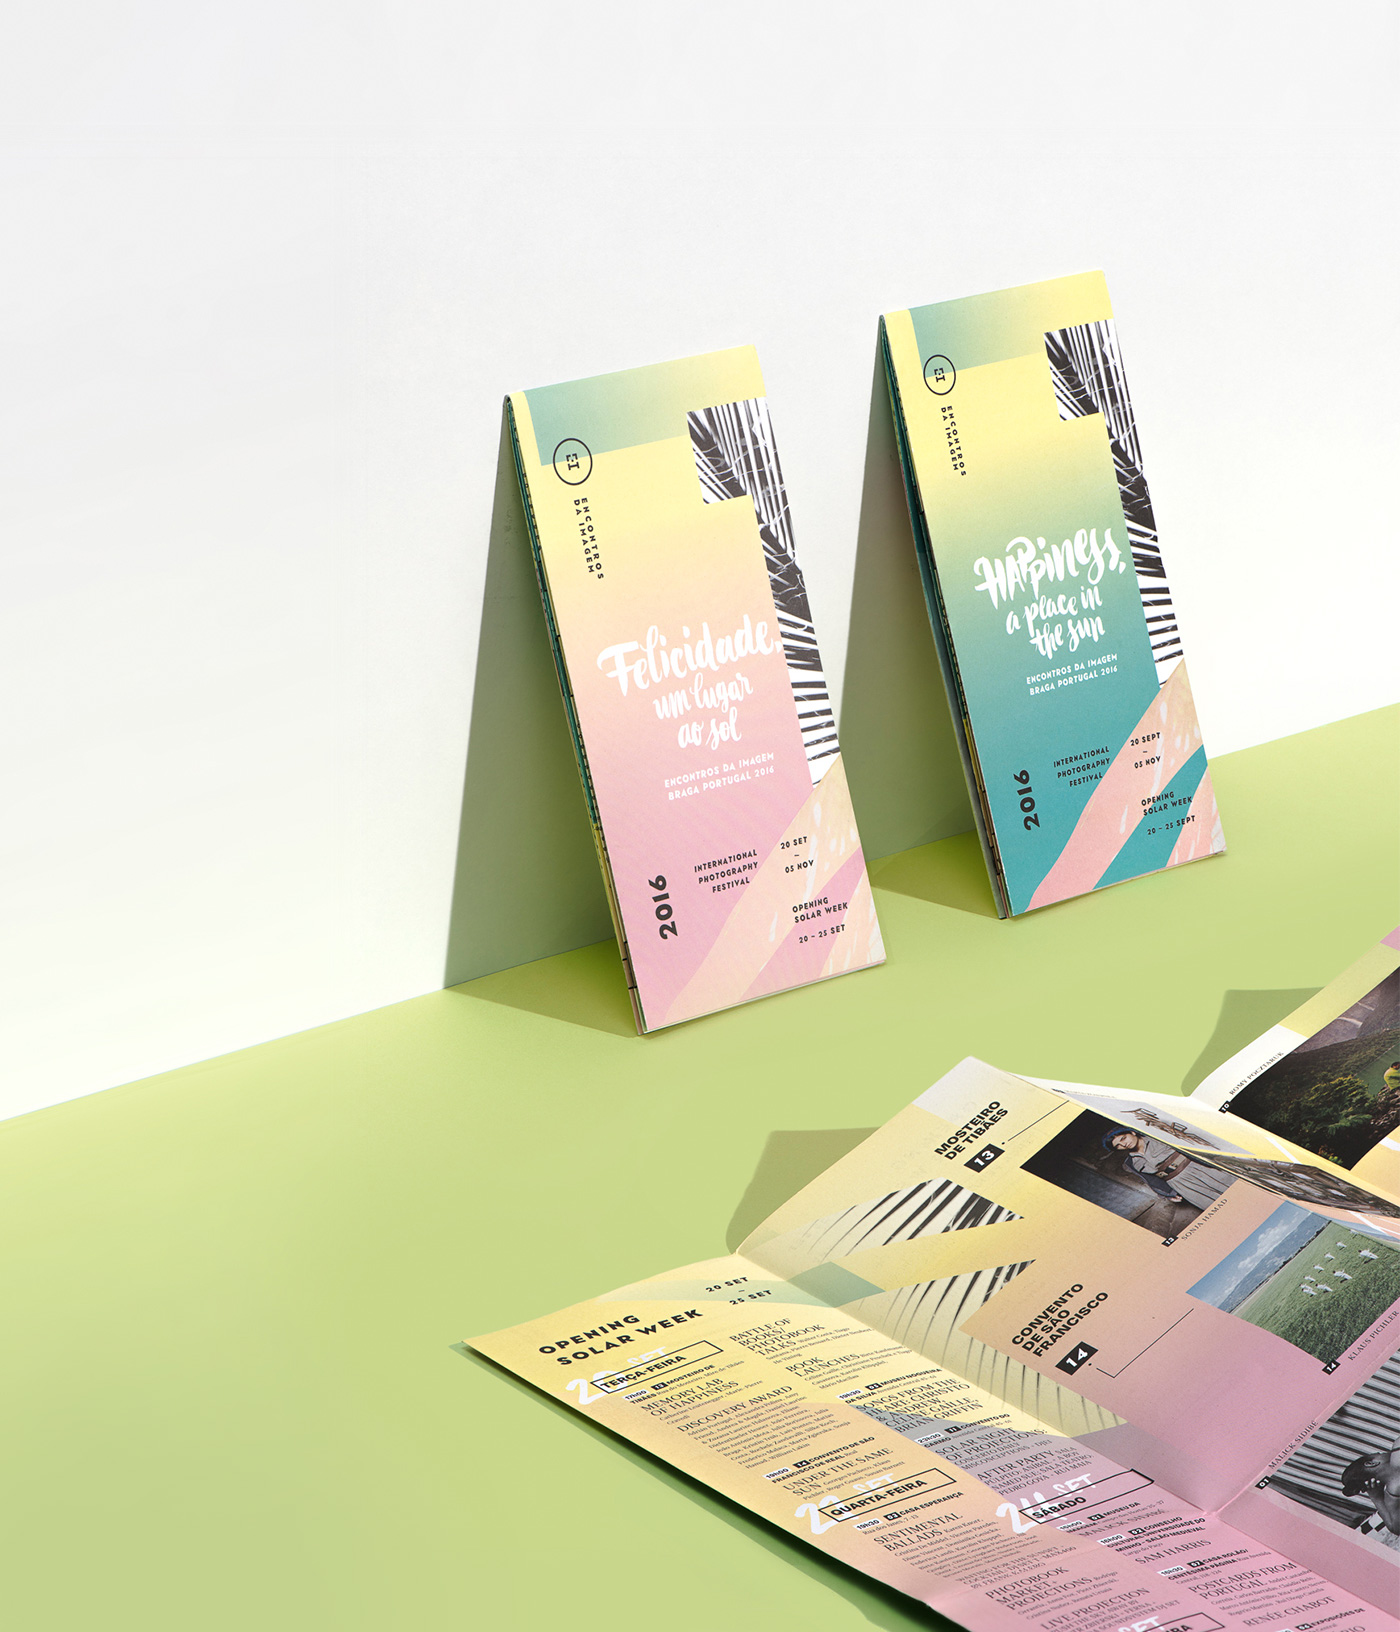 Encontros+da+Imagem+2016+—+fold+out+with+event+timetable+and+map+—+event+identity+by+Gen+Design+Studio-1.jpg